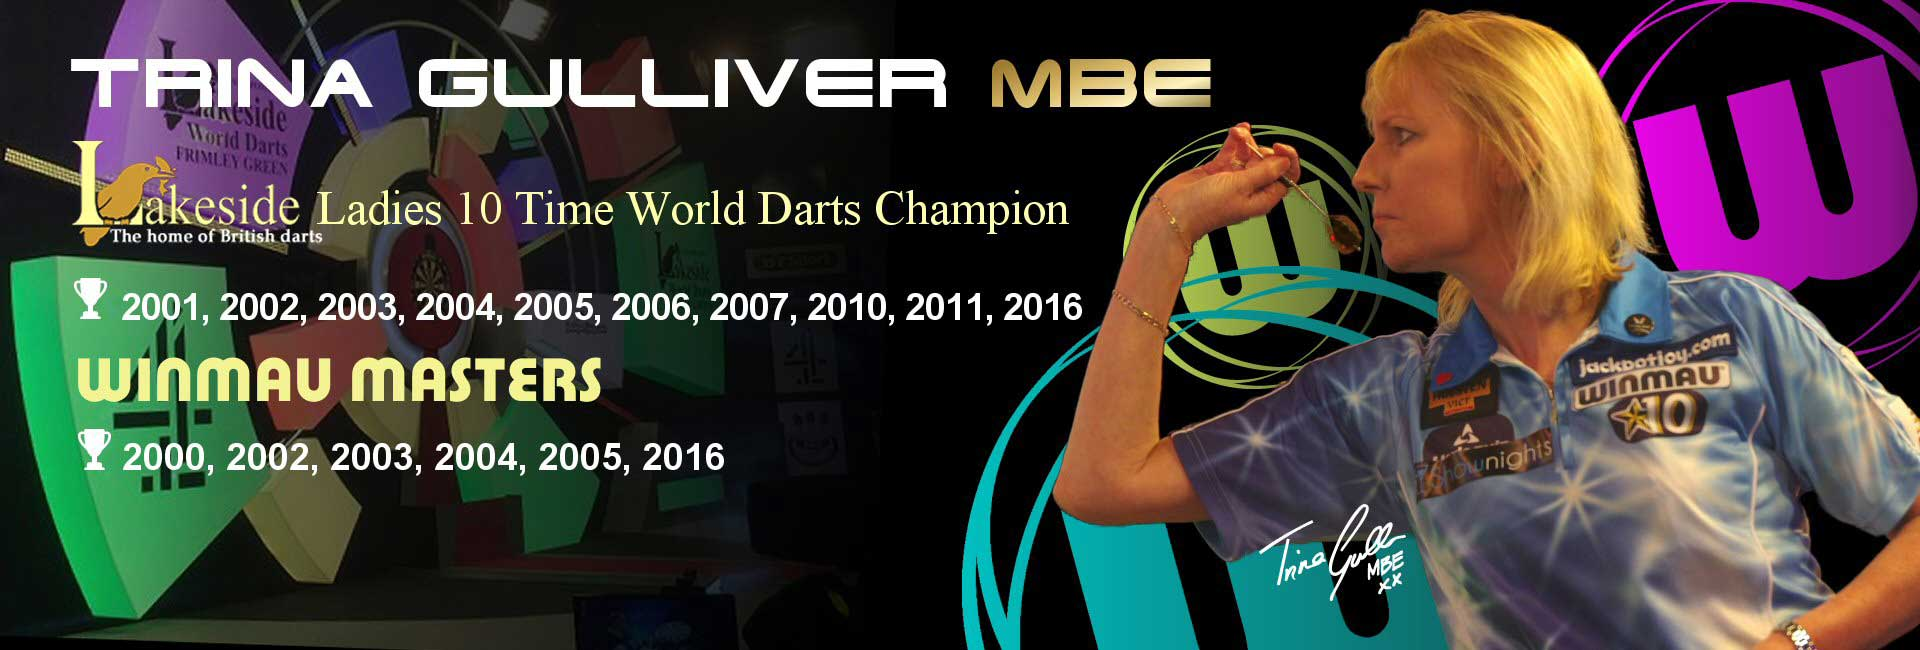 Trina Gulliver MBE 10 Time Lakeside World Champion, 6 Time Winmau Masters Champion